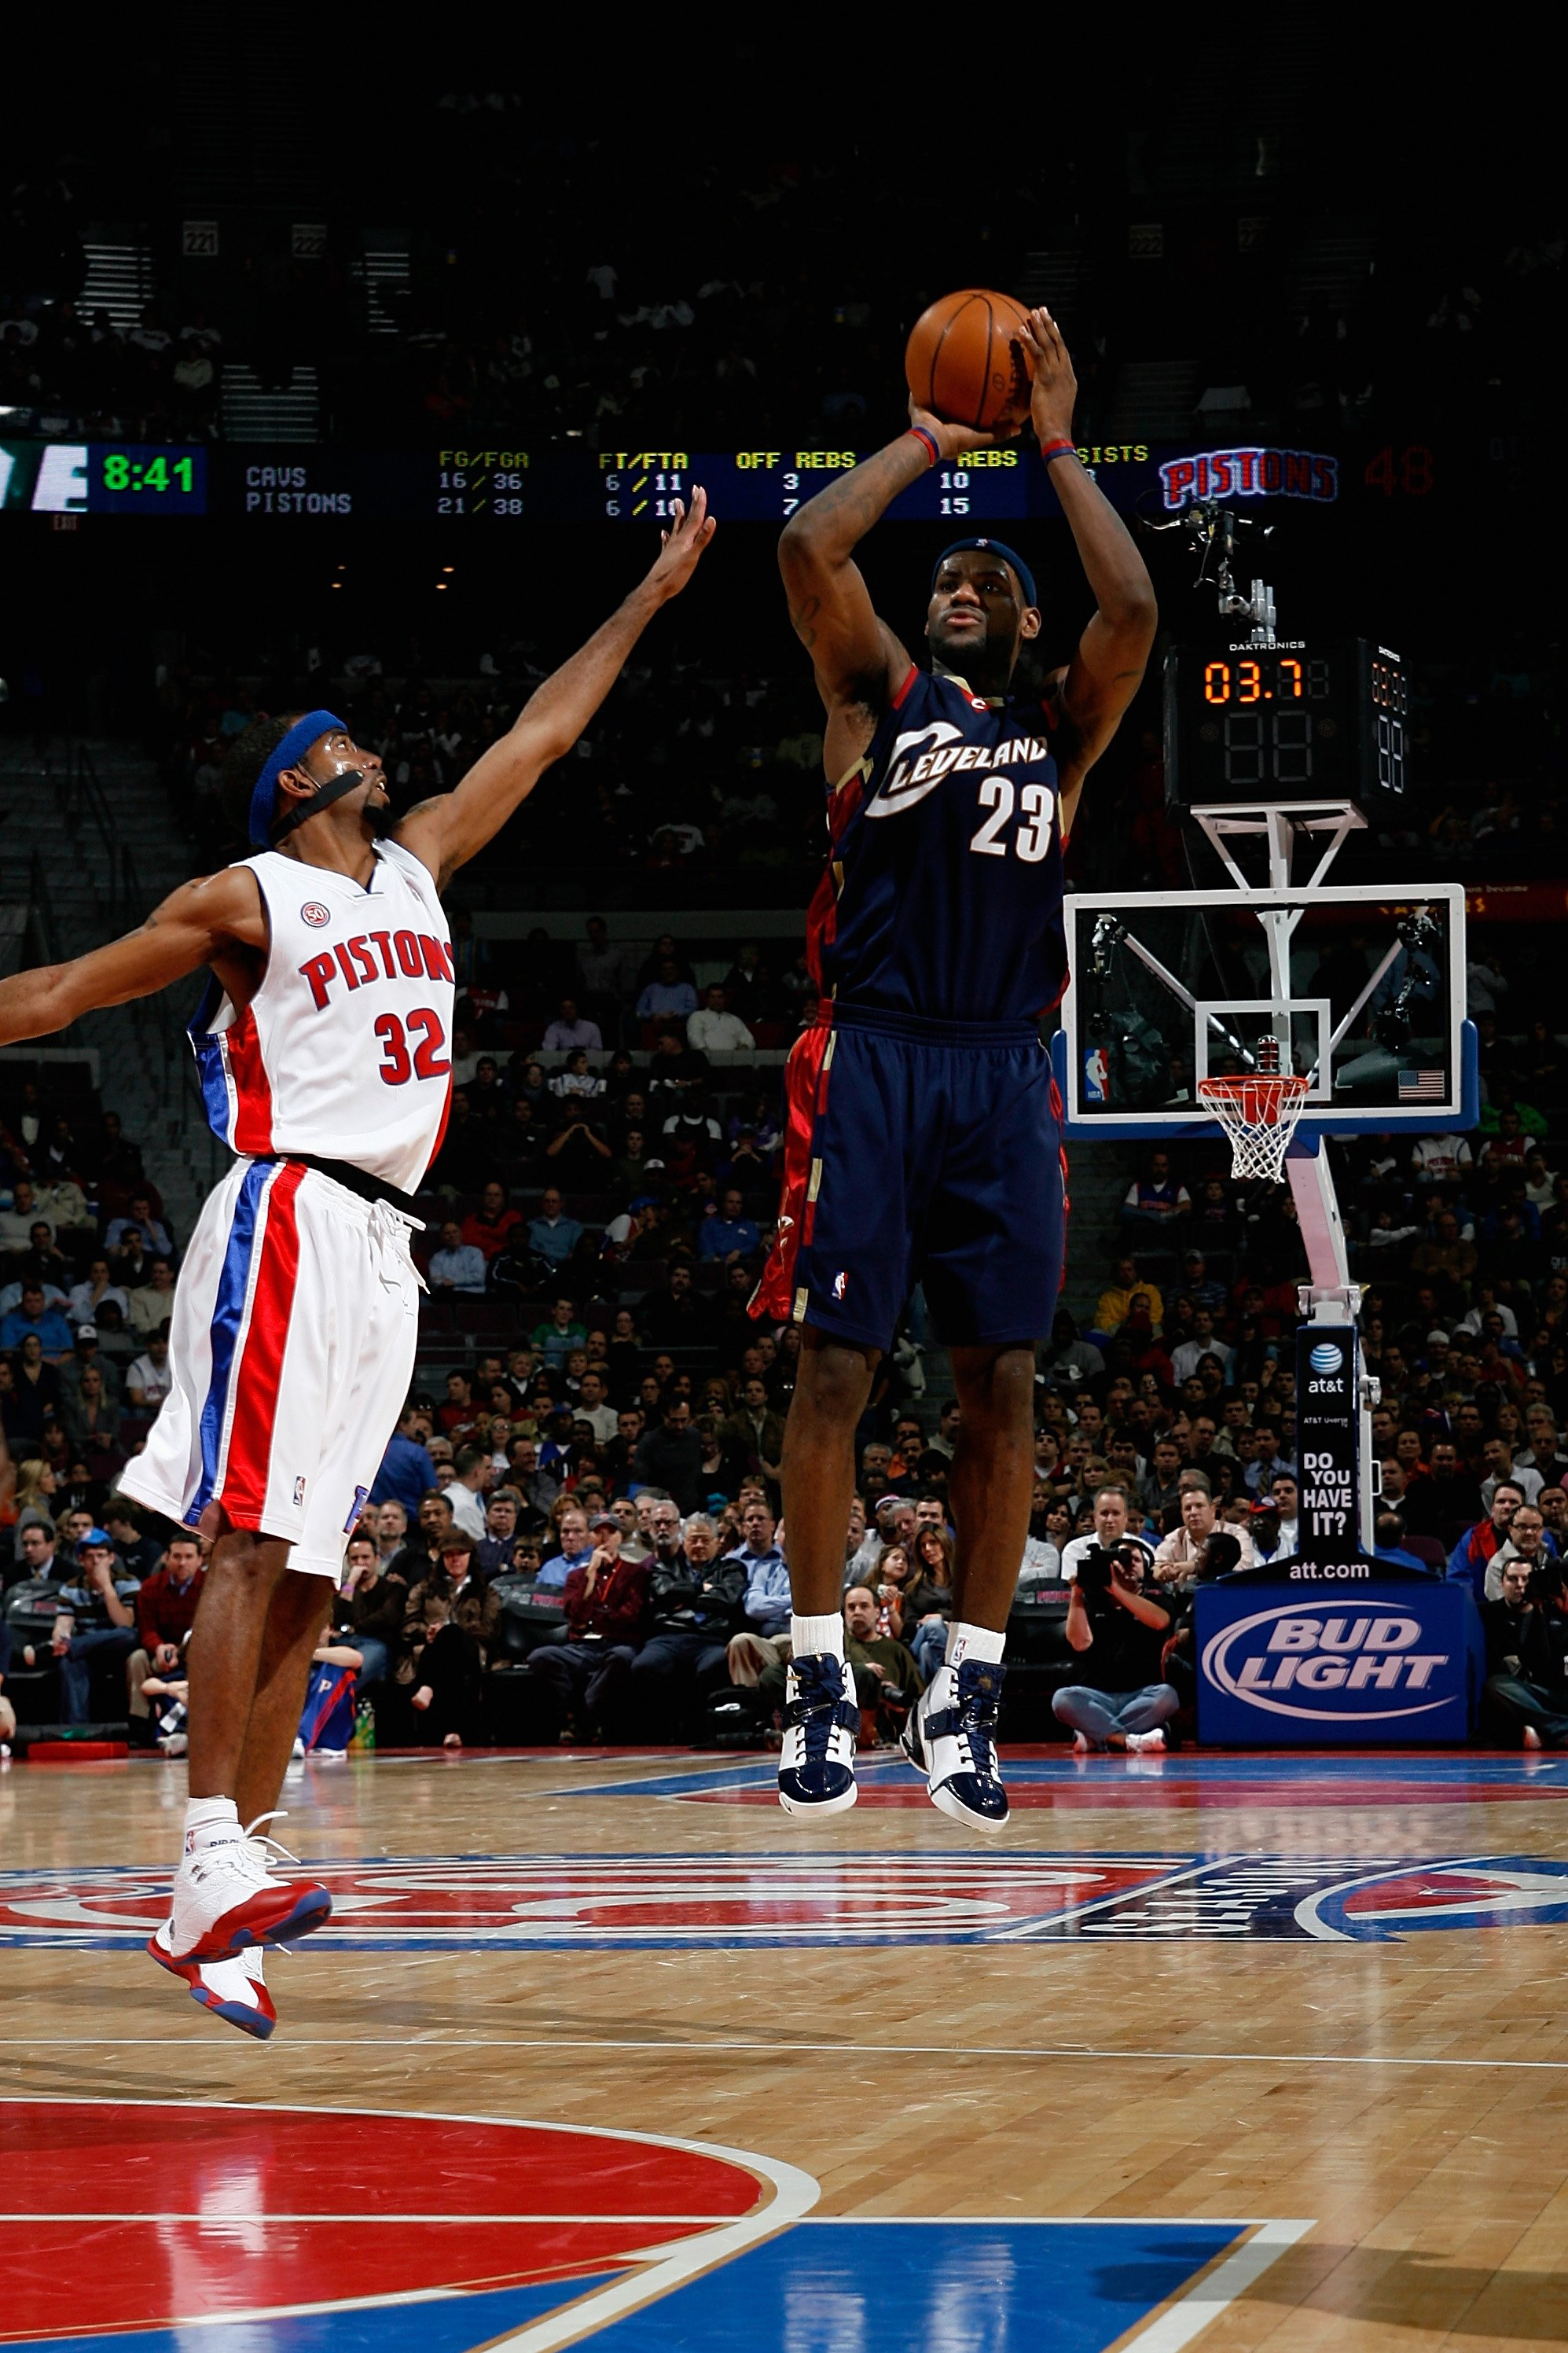 AUBURN HILLS, MI - NOVEMBER 28: LeBron James #23 of the Cleveland Cavaliers shoots over Richard Hamilton #32 of the Detroit Pistons during the game on November 28, 2007 at the Palace of Auburn Hills in Auburn Hills, Michigan.  The Pistons won 109-74.   NO